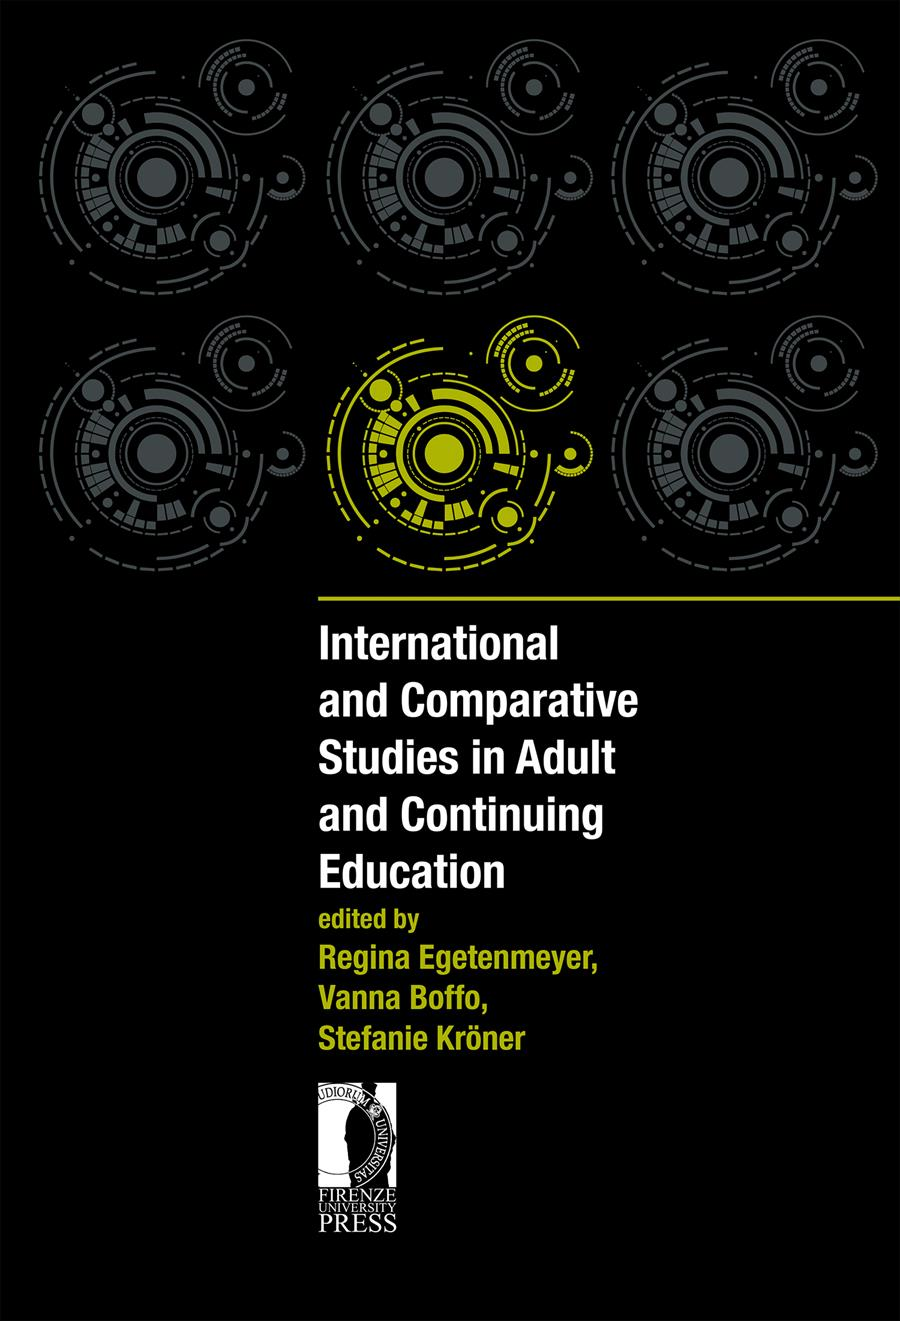 International and Comparative Studies in Adult and Continuing Education